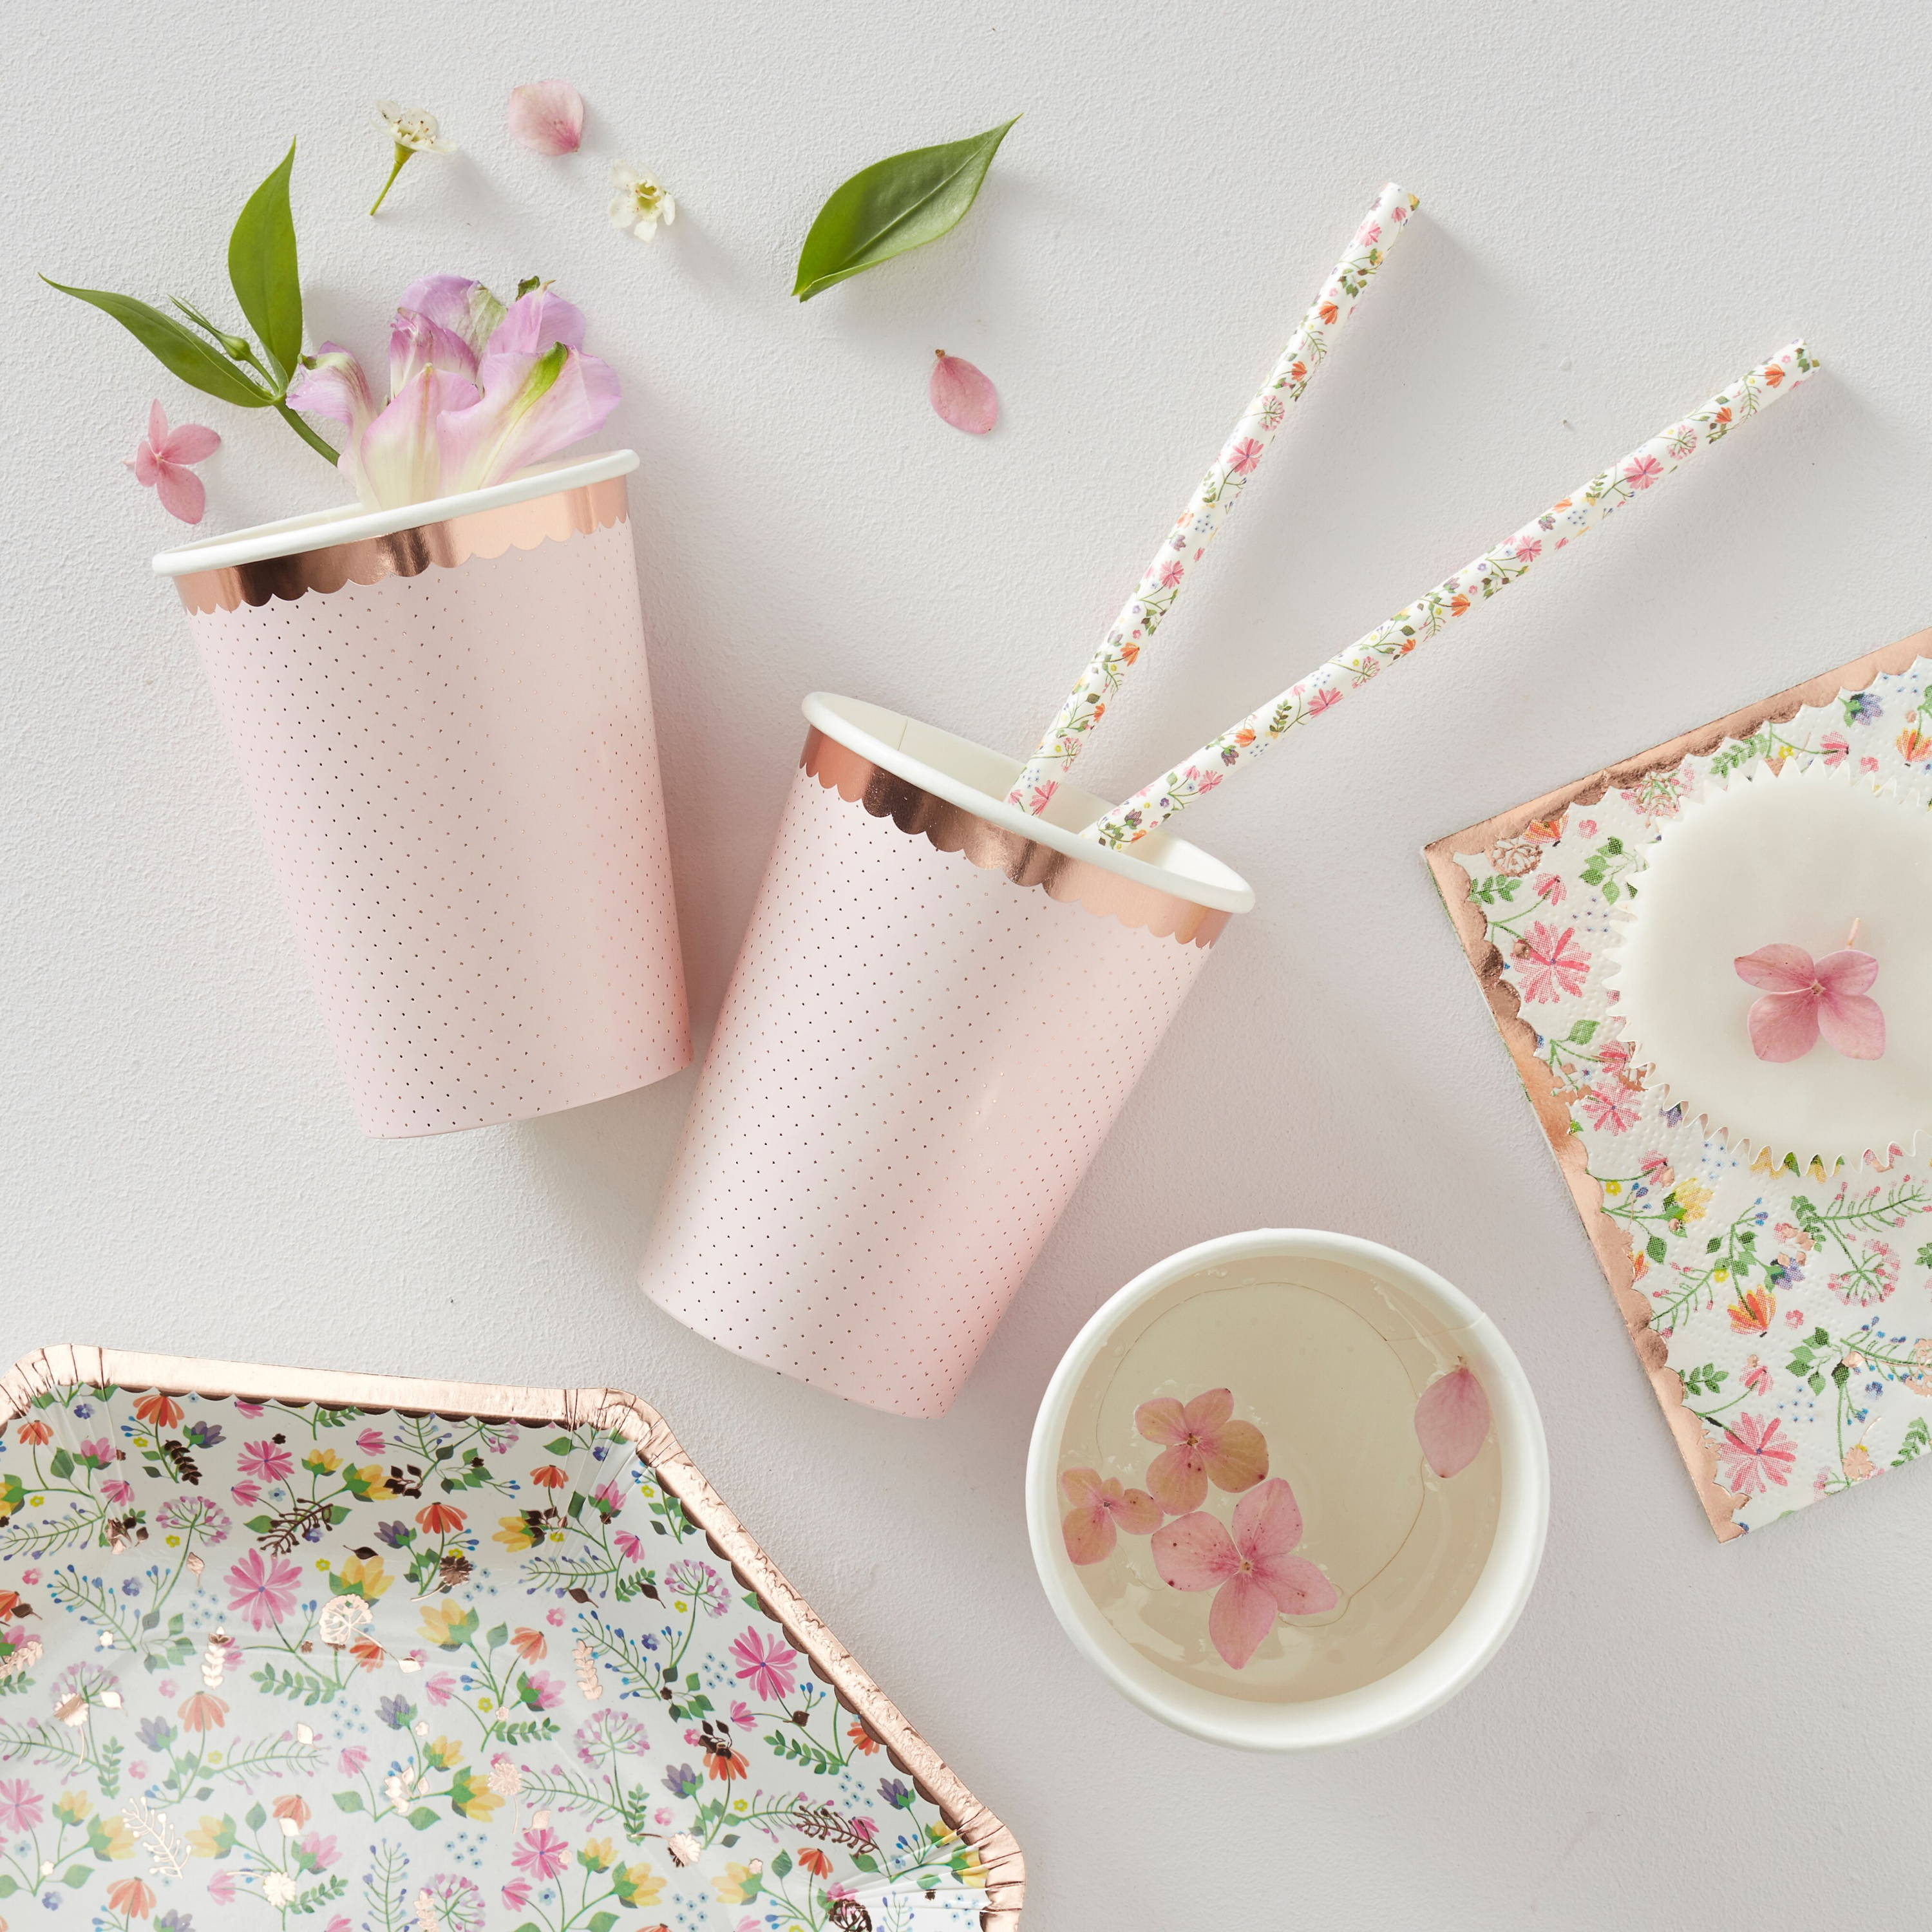 A photo of a classy hen party decor range on a table including pastel pink party cups, ditsy floral party plates, pictured with flowers, rose water and cupcakes on a floral napkin